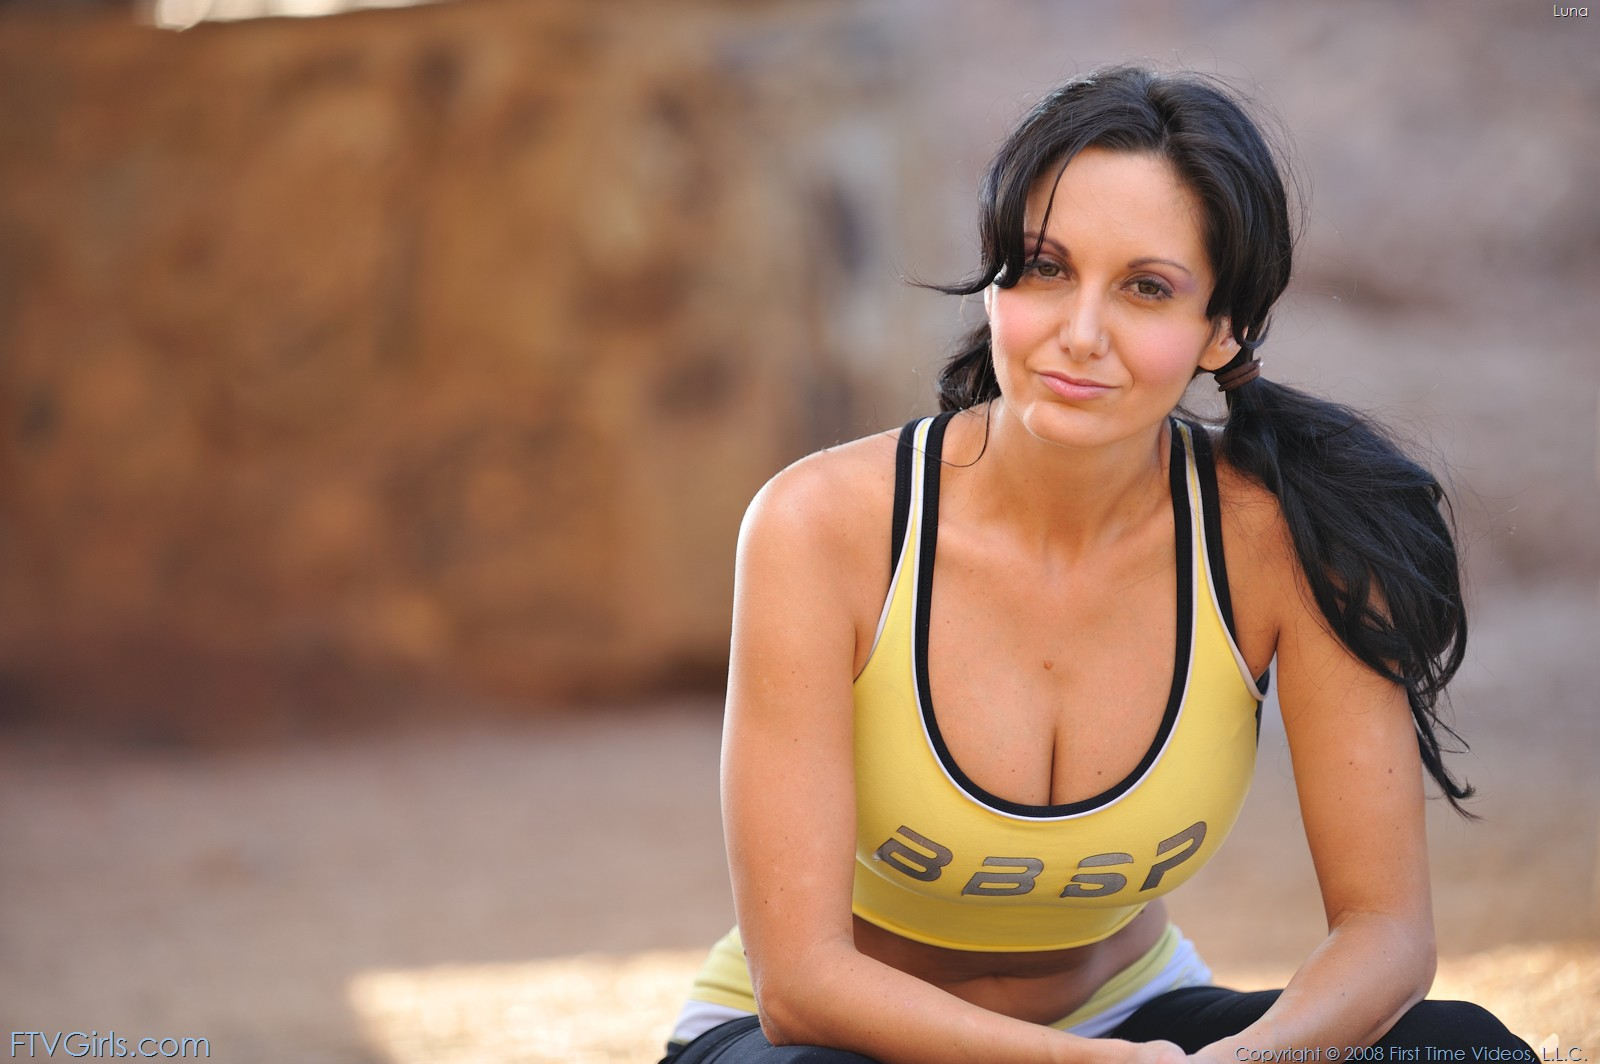 Ava Kolker Hd Wallpapers: Ava Addams Wallpapers Images Photos Pictures Backgrounds